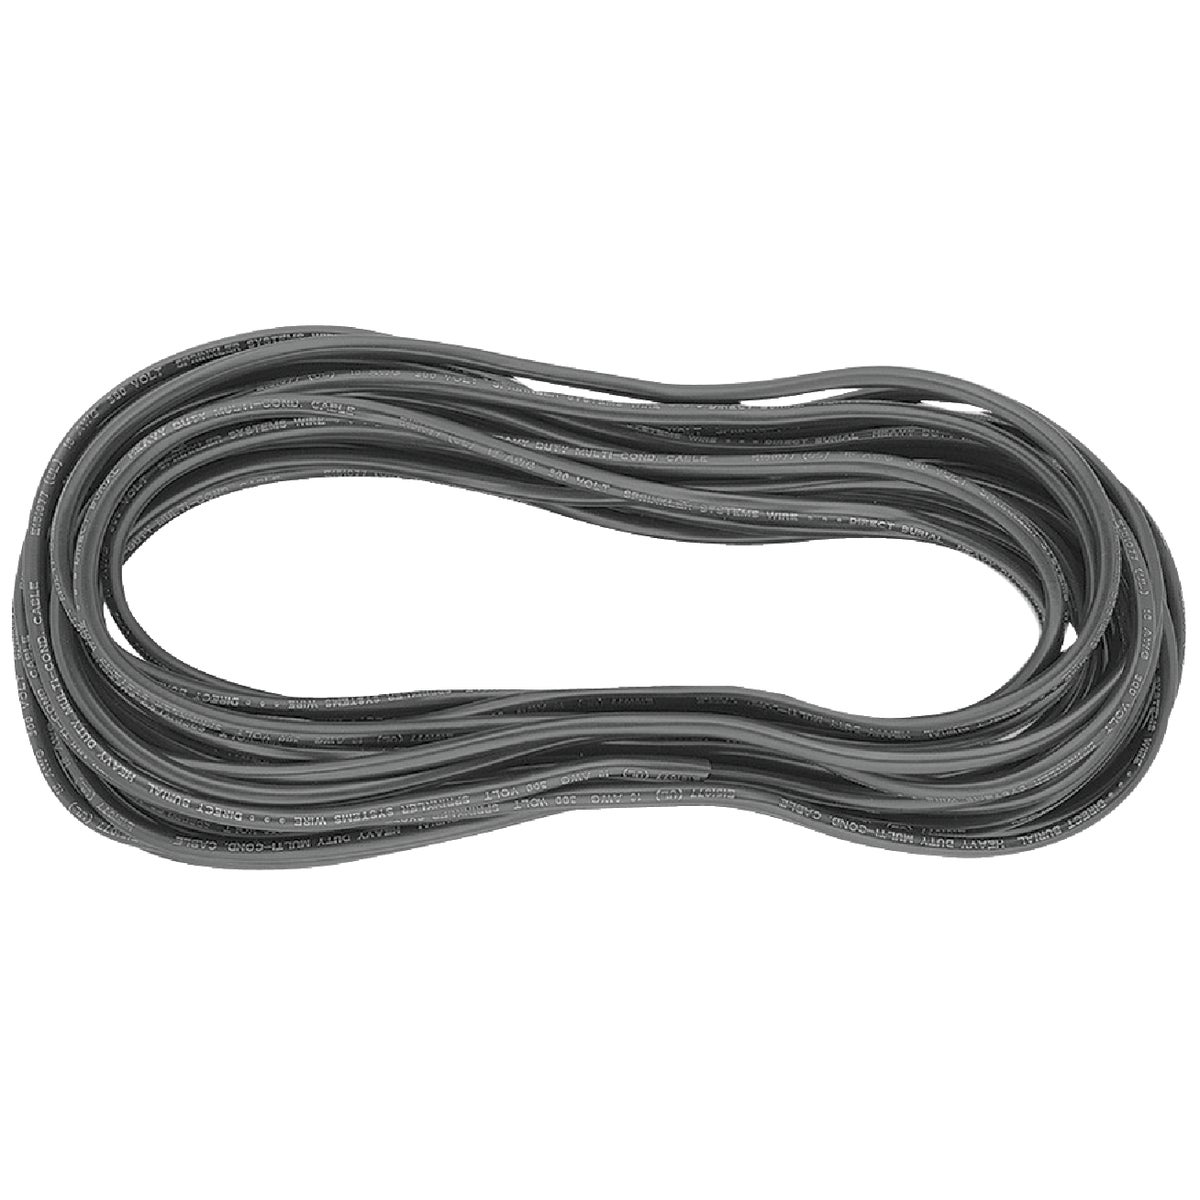 5STRD 50' SPRINKLER WIRE